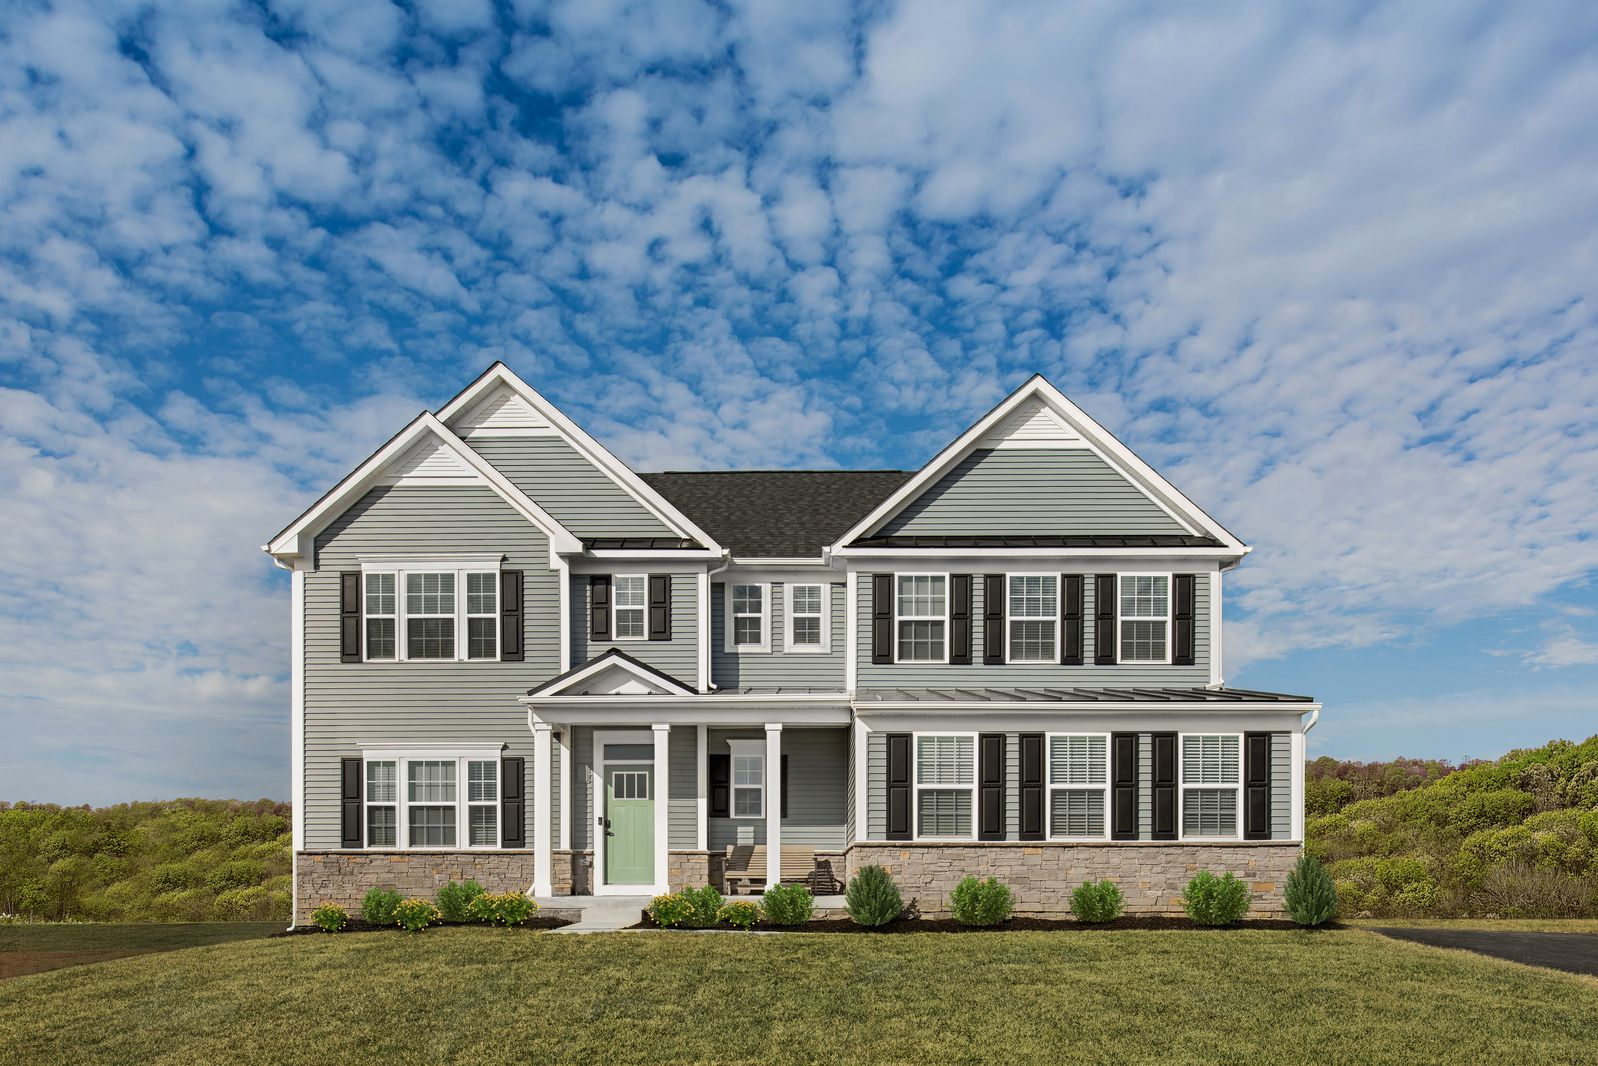 Welcome Home to Willow Brook Farm in Milford:Beautifully designed and situated, you'll love building your dream home in Willow Brook Farm with spacious and wooded yards!Schedule a 1-on-1, phone, or video appointment